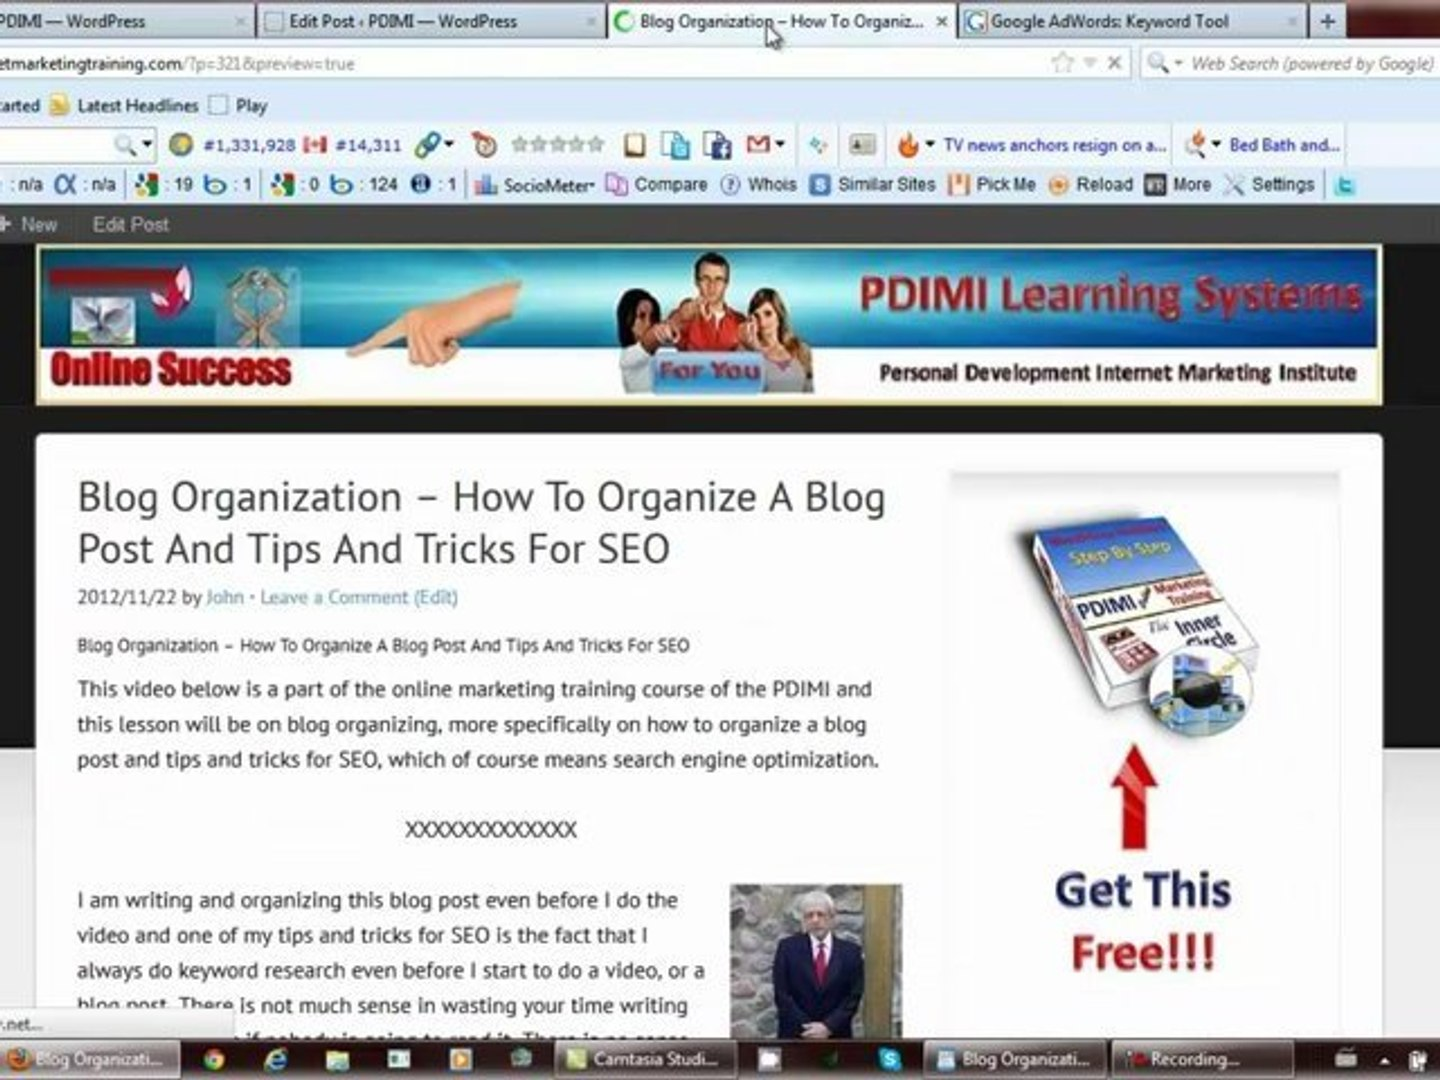 Blog Organization - How To Organize A Blog Post And Tips And Tricks For SEO